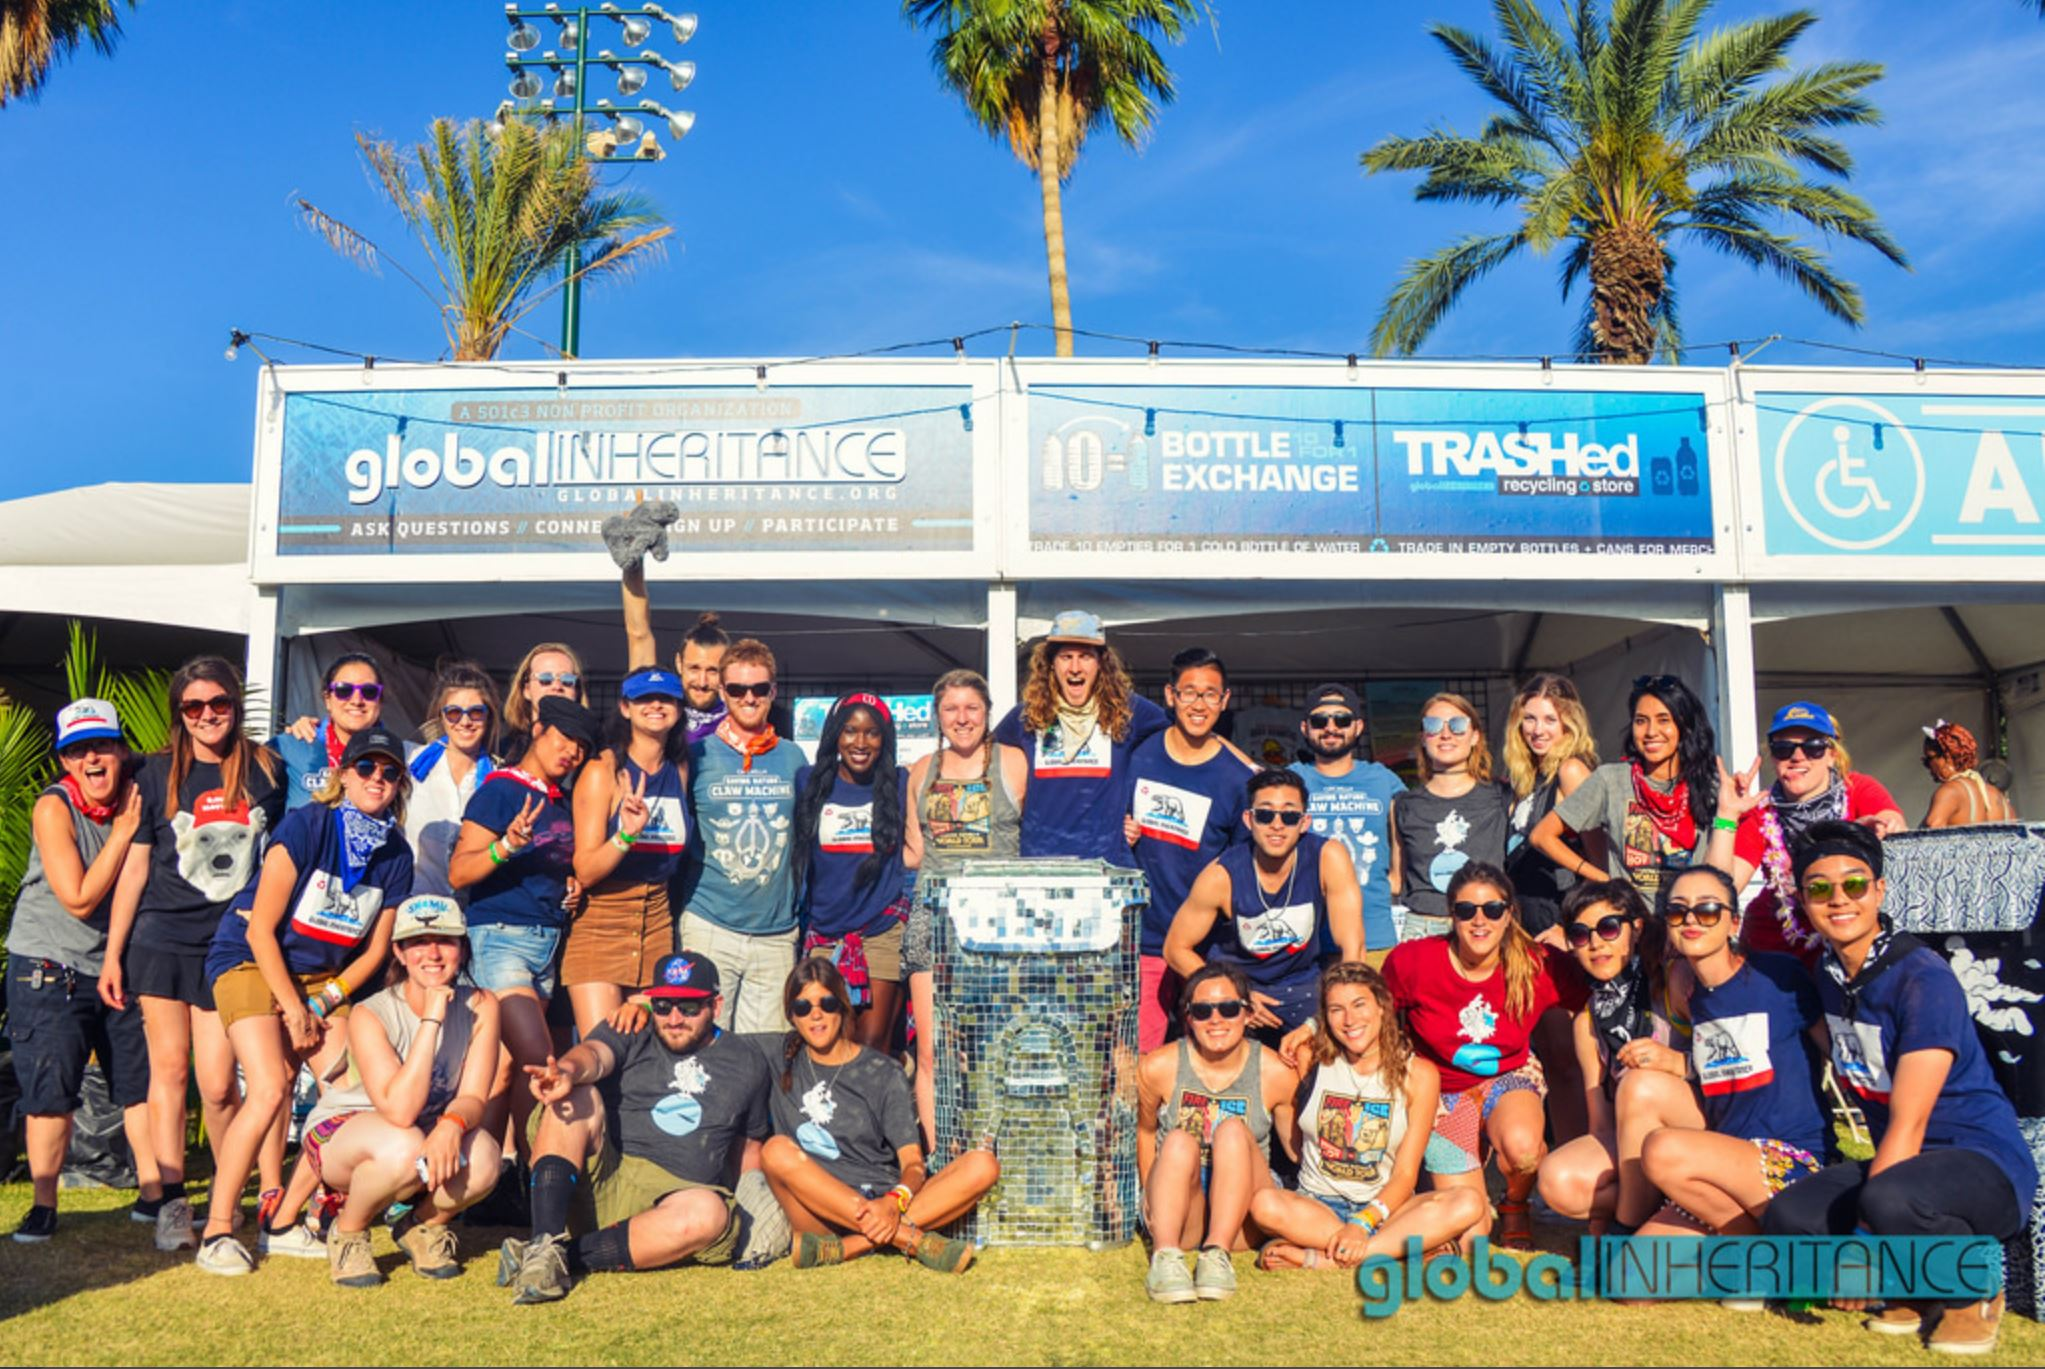 Outreach: Volunteer Manager for Global Inheritance recycling programs at Coachella